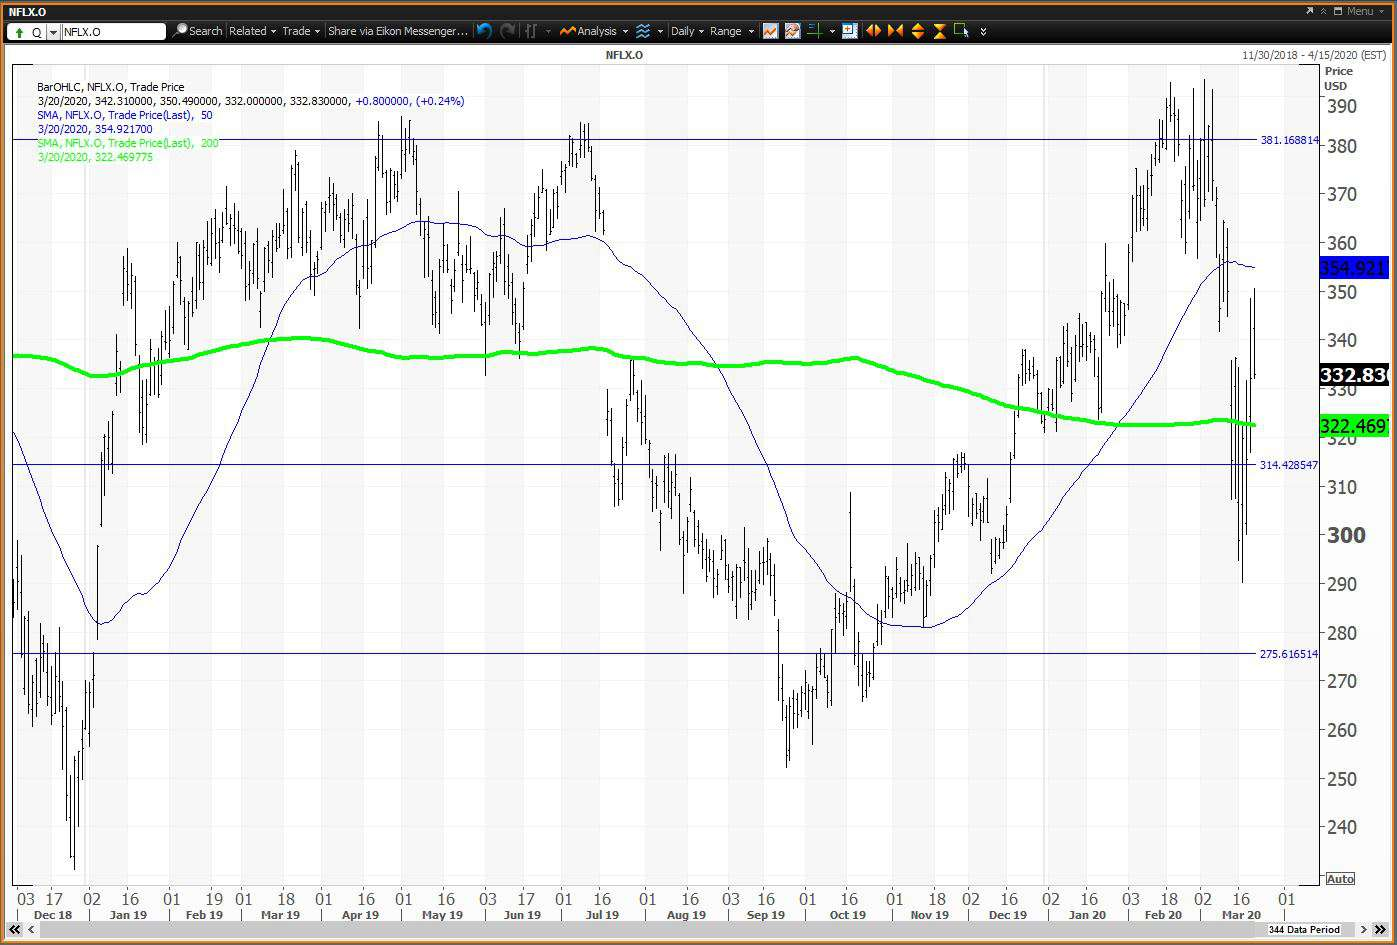 Daily chart showing the share price performance of Netflix, Inc. (NFLX)